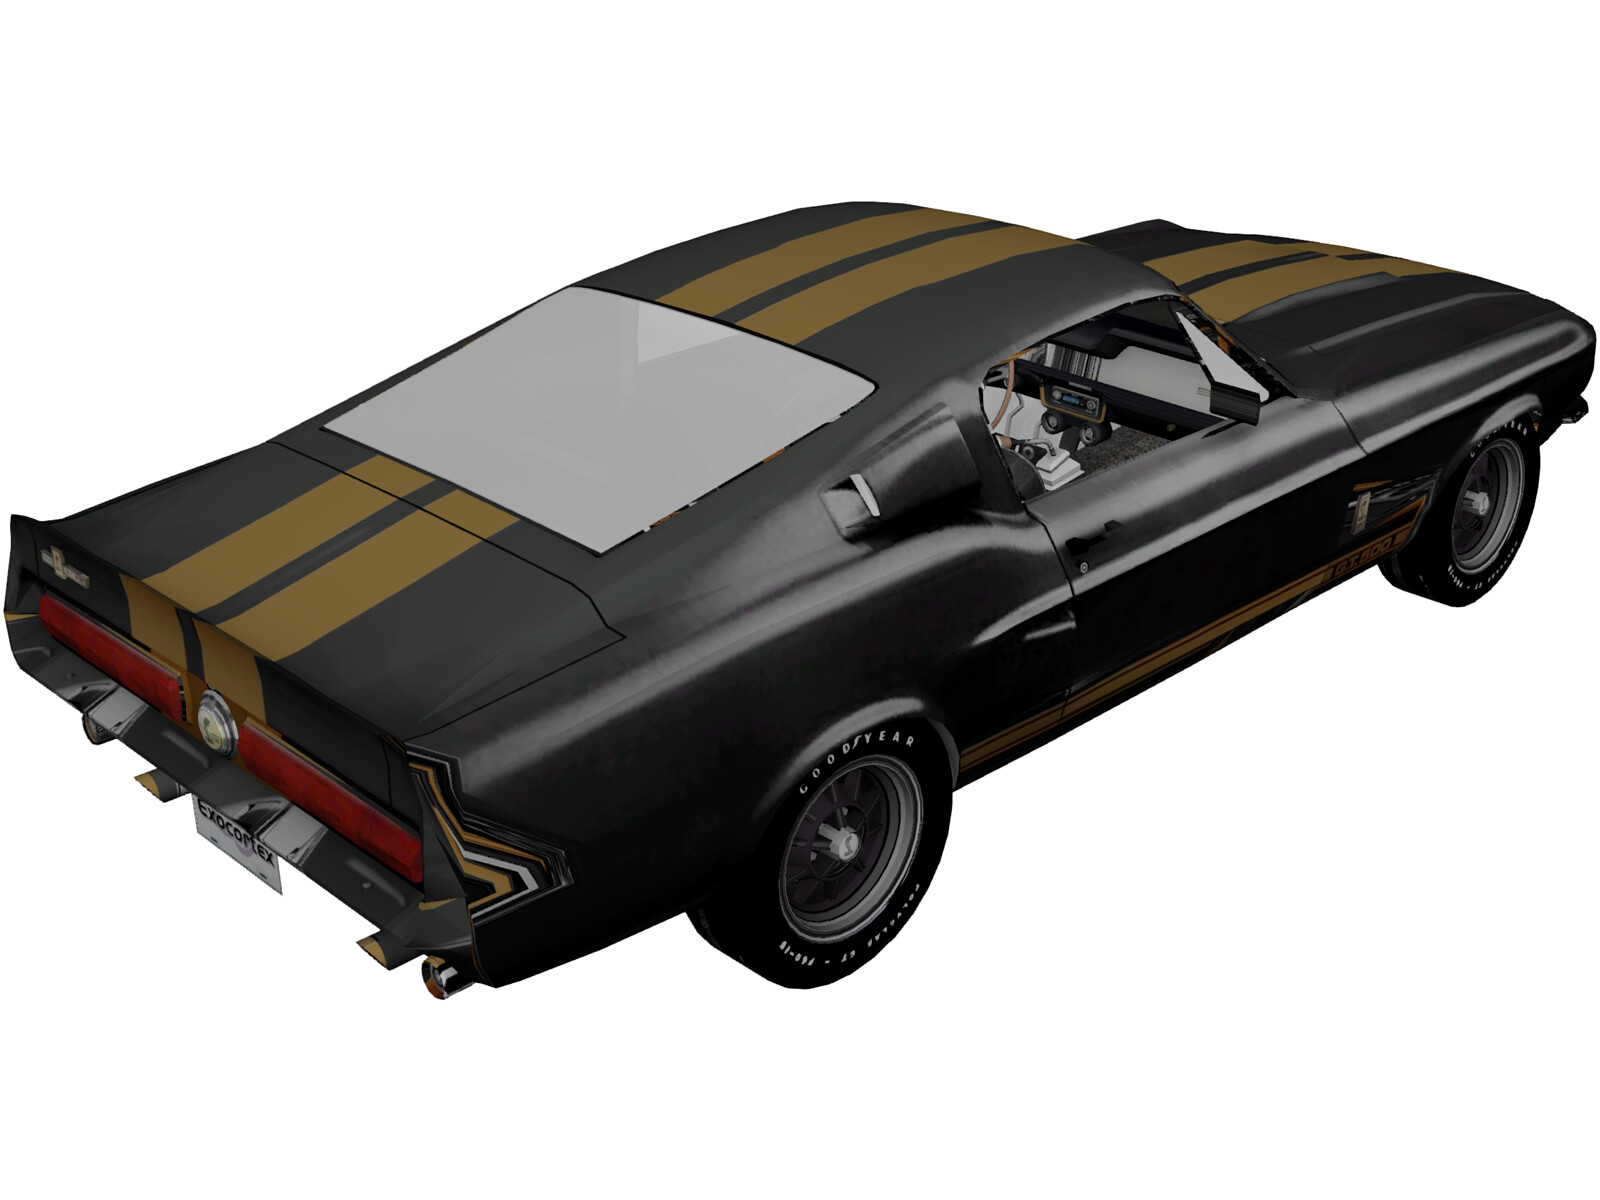 Ford Mustang Shelby GT500 (1967) 3D Model - 3D CAD Browser